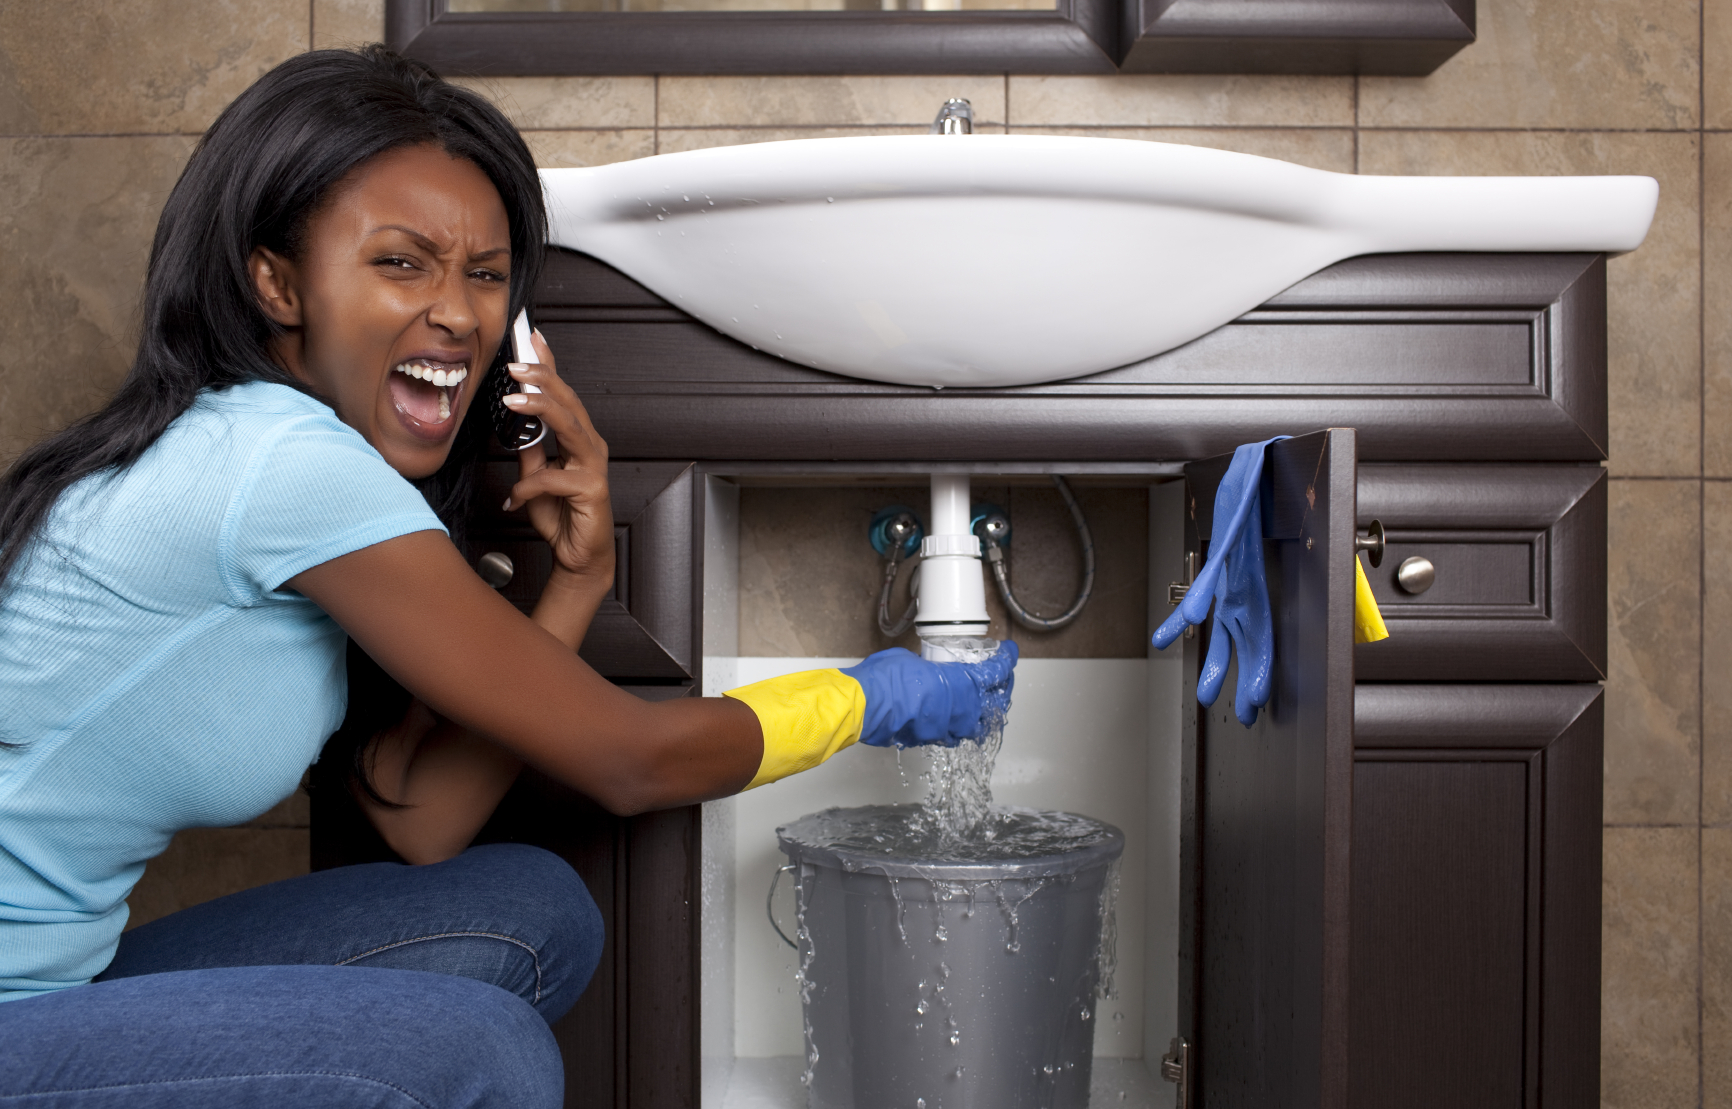 When You Have a Lake Orion Plumbing Hazard. Maintenance Drain Cleaning in Lake Orion MI